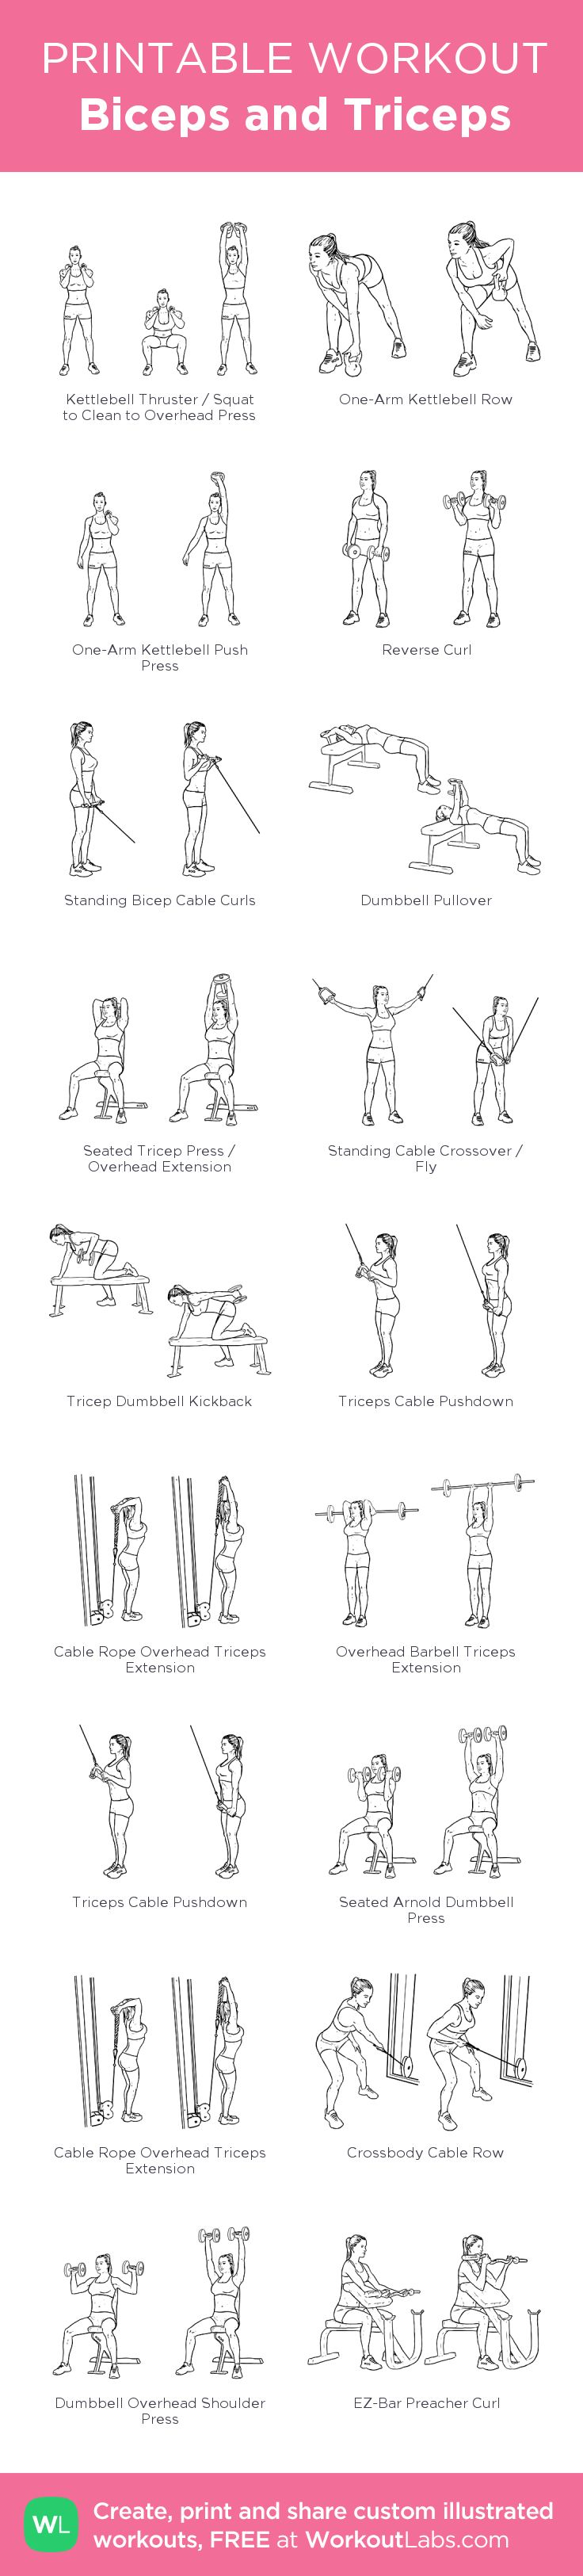 Biceps and Triceps: my visual workout created at WorkoutLabs.com • Click through to customize and download as a FREE PDF! #customworkout